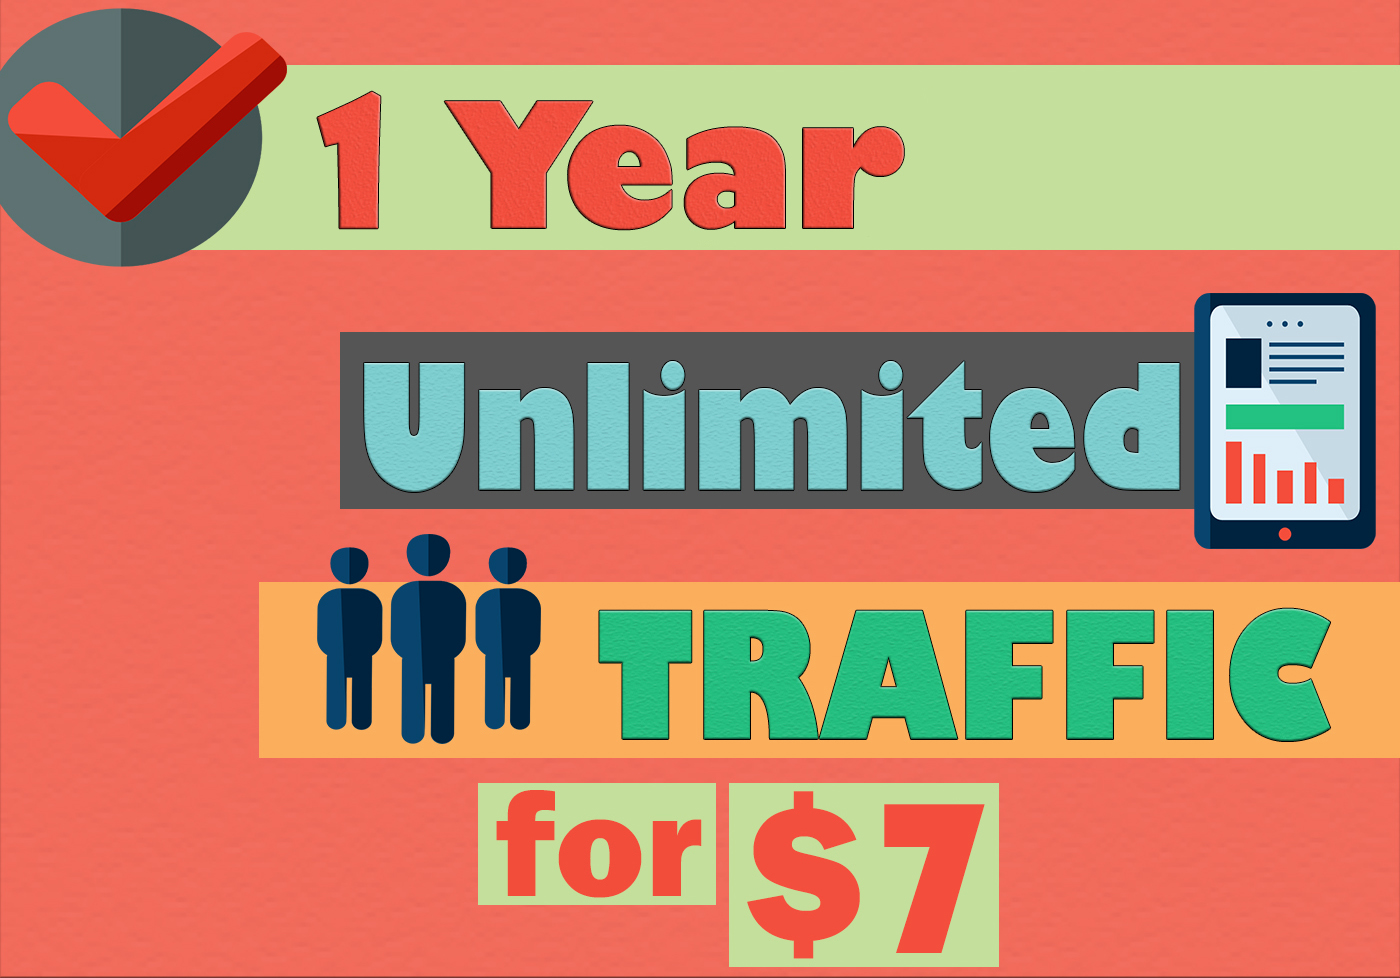 1 YEAR UNLIMITED KEYWORD TARGETED TRAFFIC